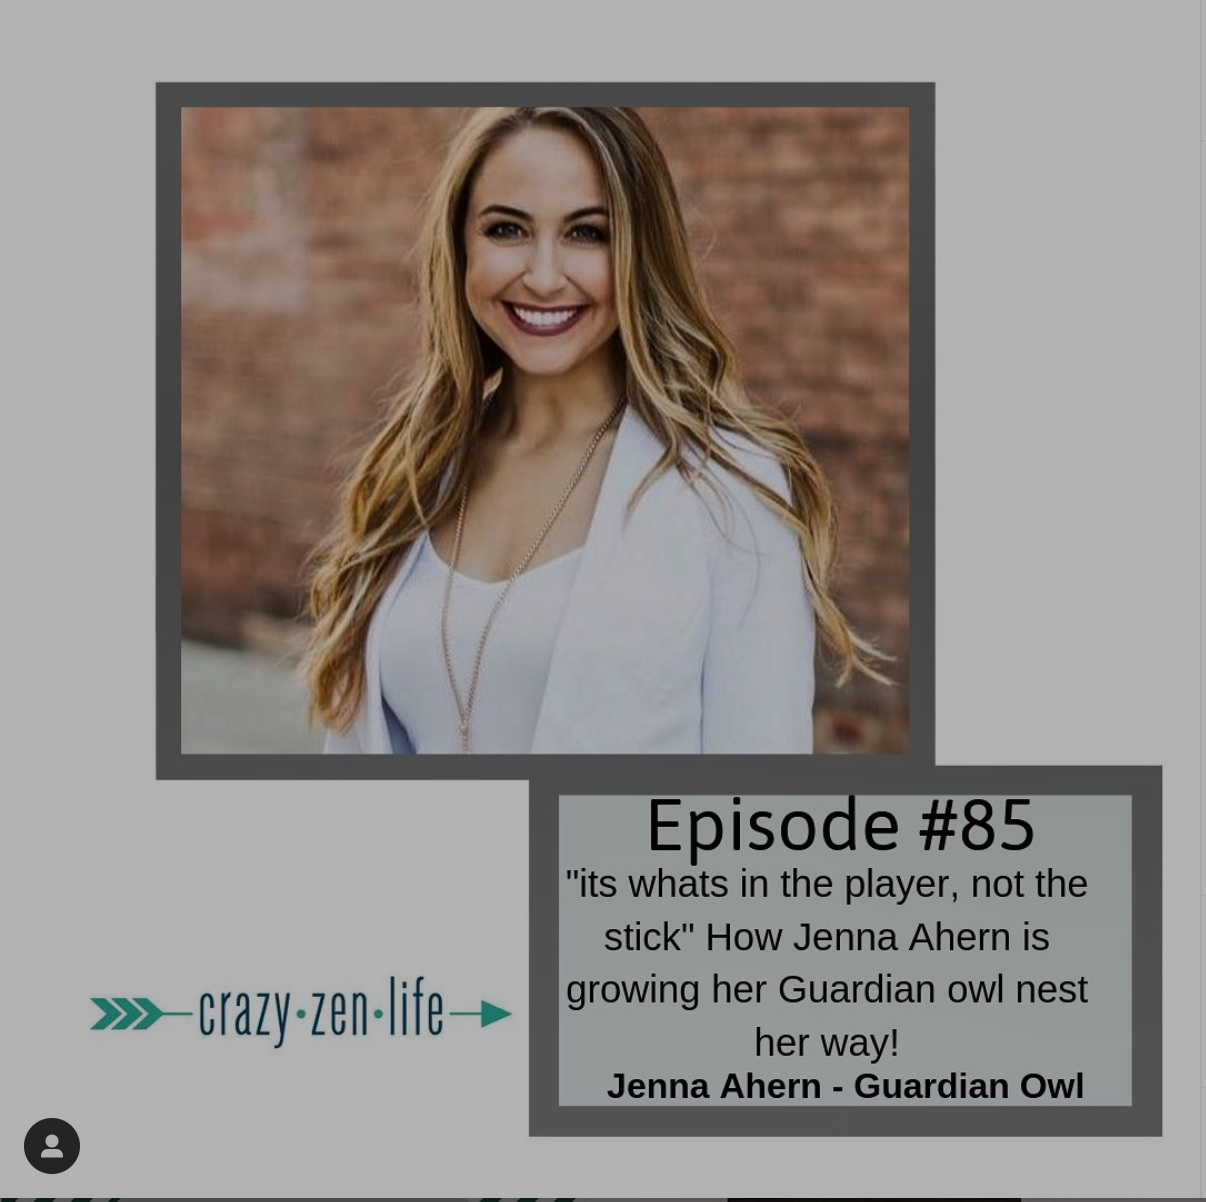 Women ceo Jenna Ahern